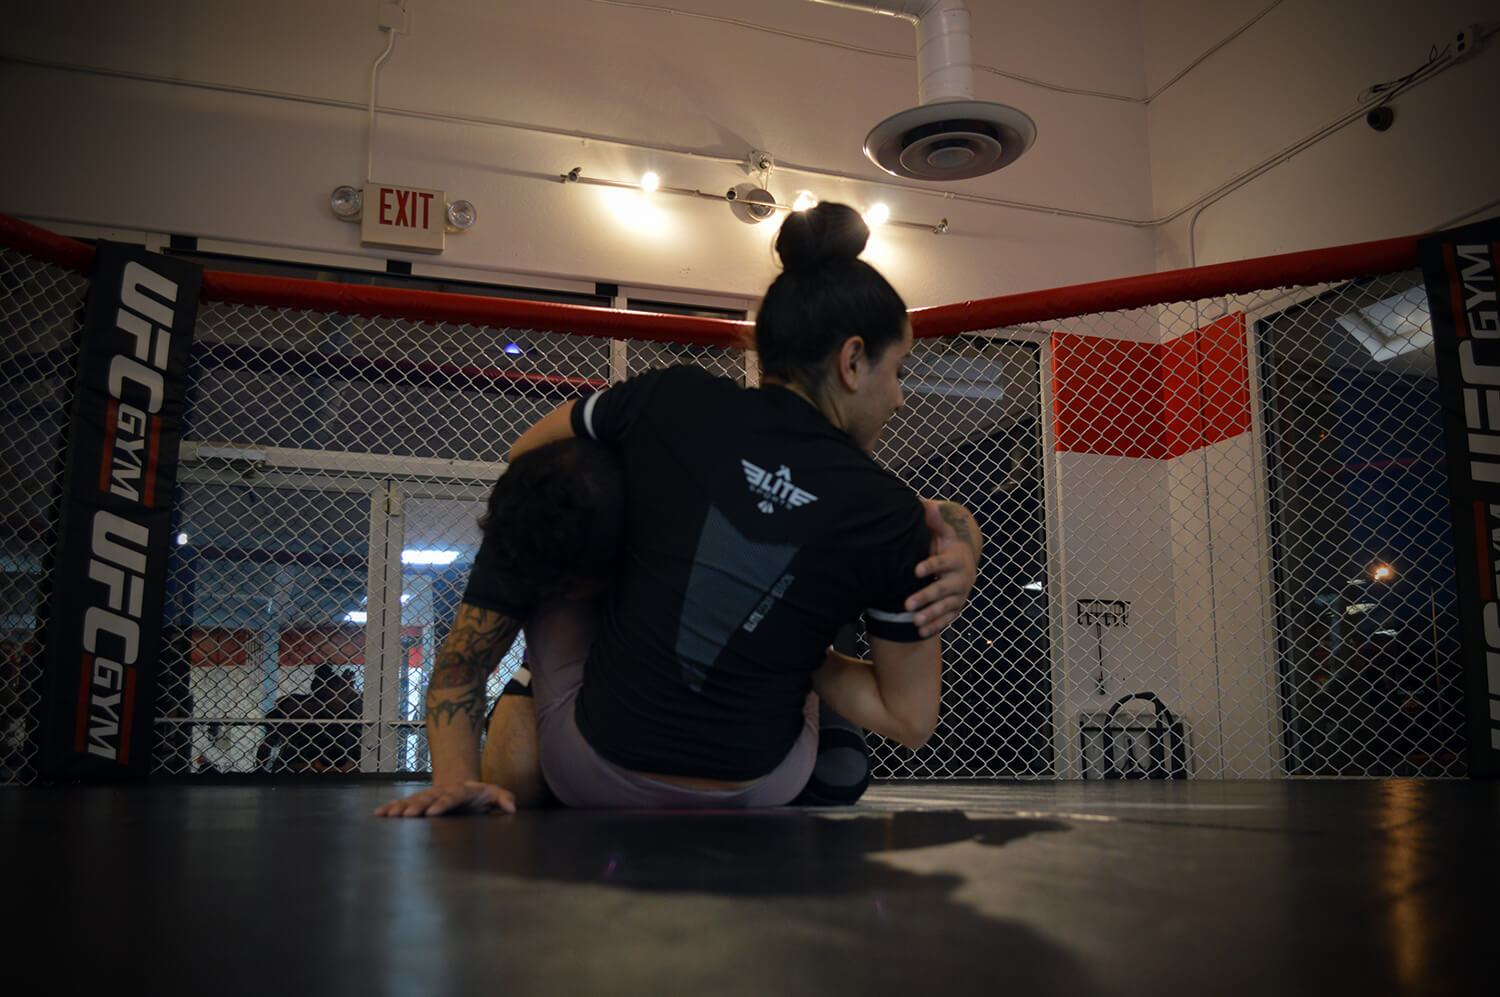 Elite-sports-Team-Elite-NO GI-Andria-Torrez-image17.jpeg